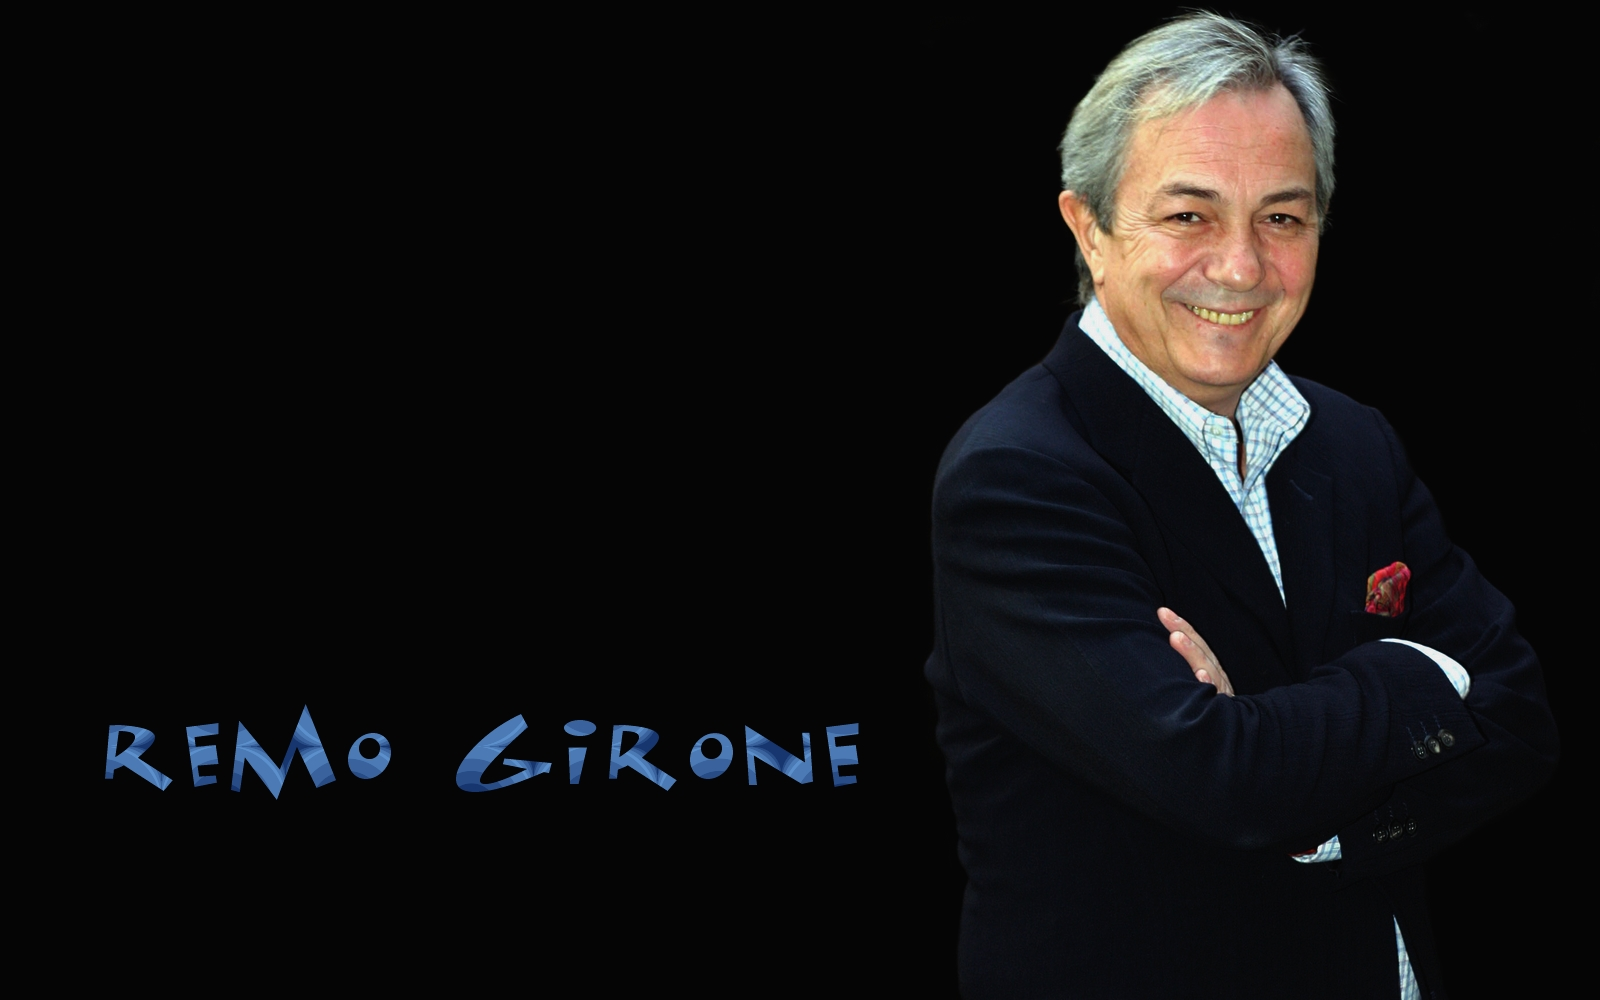 Remo Girone